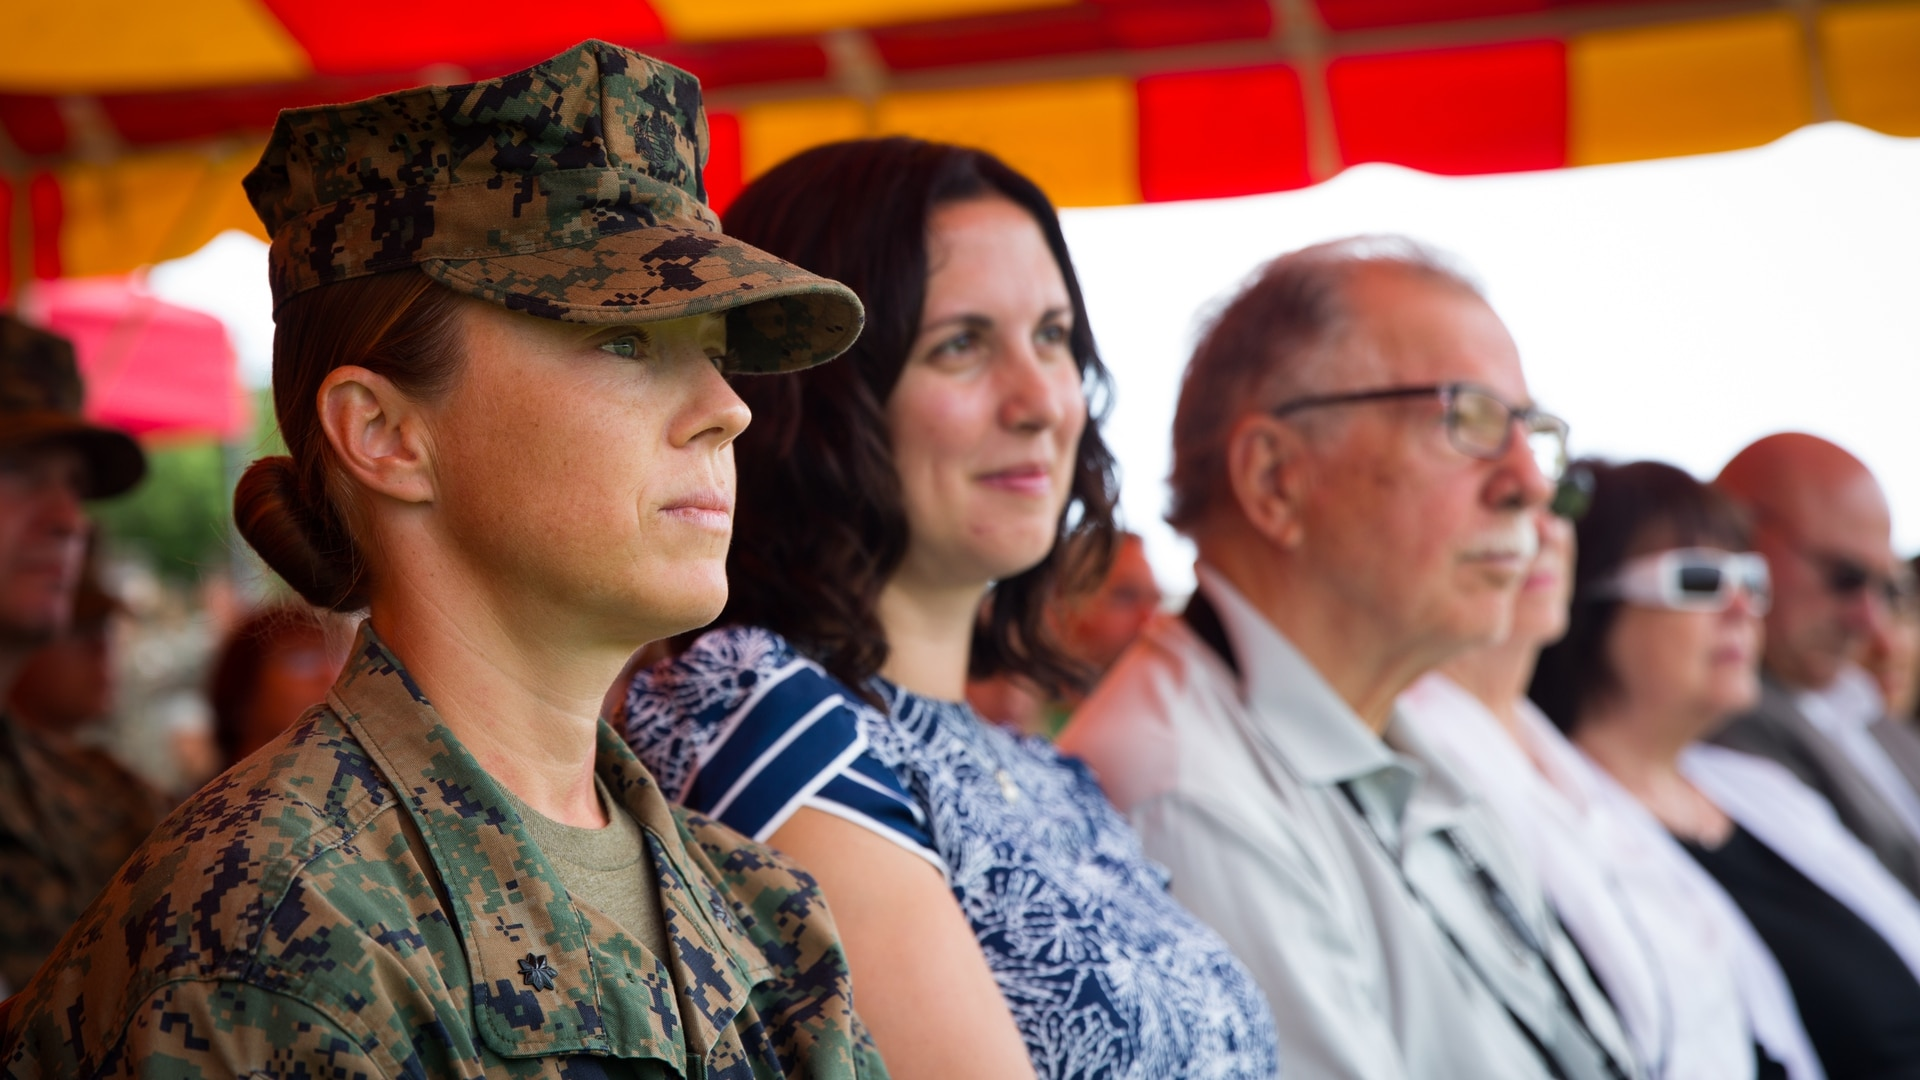 U.S. Marine Corps Lt. Col. Michelle I. Macander, then-commanding officer of 1st Combat Engineer Battalion, 1st Marine Division, sits with her family during a change of command ceremony in 2018. (Lance Cpl. Audrey C. M. Rampton/Marine Corps)